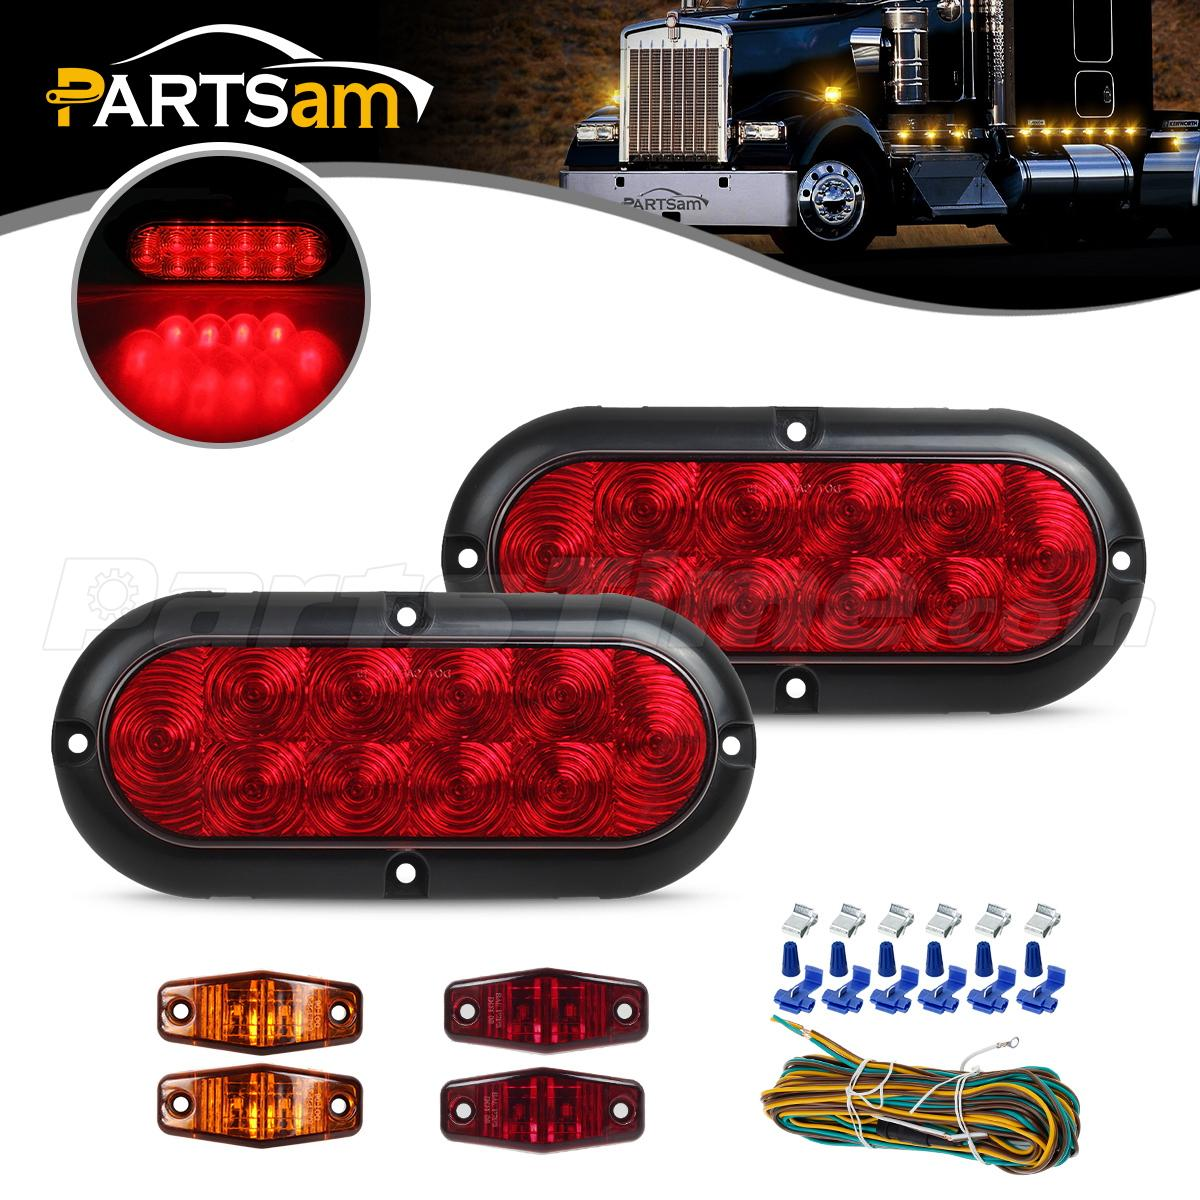 150984 2?p=ZXNvbmdib24=&s=t&rn=6272684 trailer boat led light kit,red stop turn tail,red amber side  at edmiracle.co